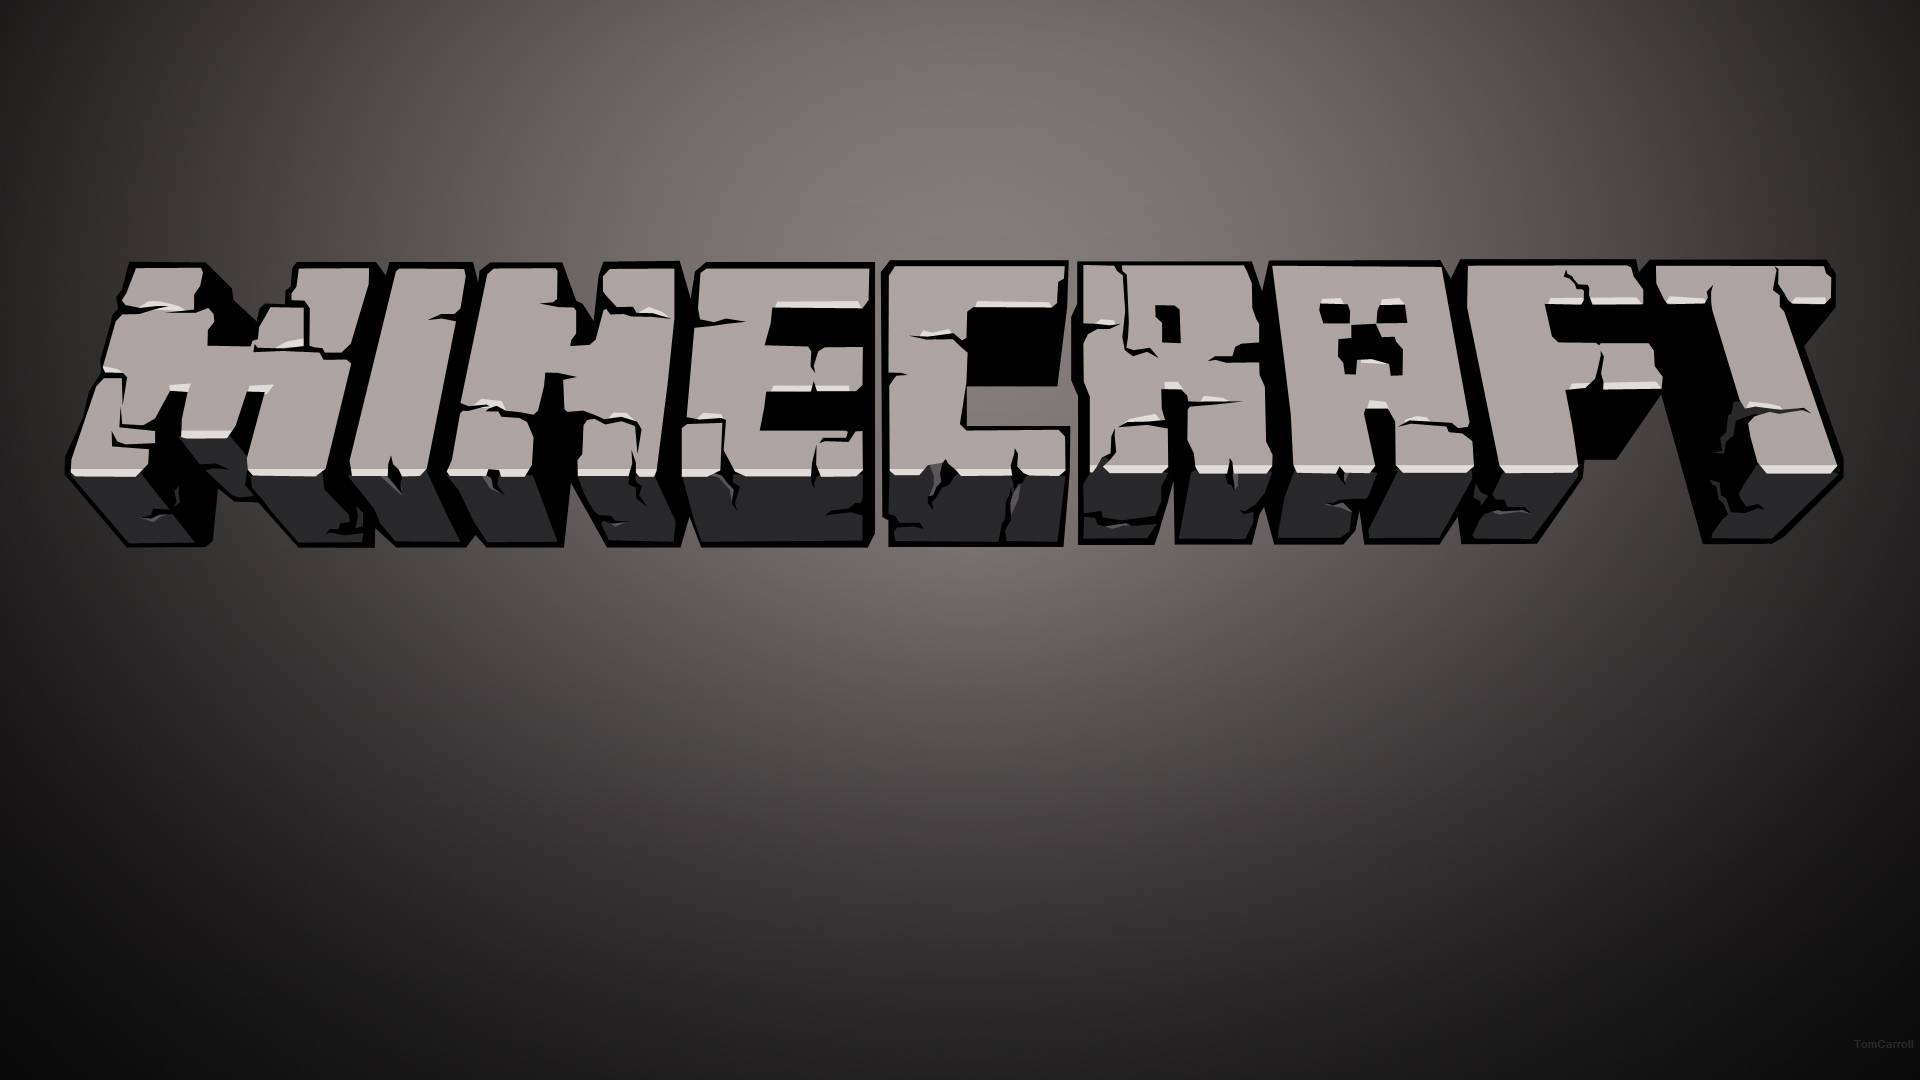 Minecraft Wallpaper Awesome Minecraft wallpaper 1920x1080